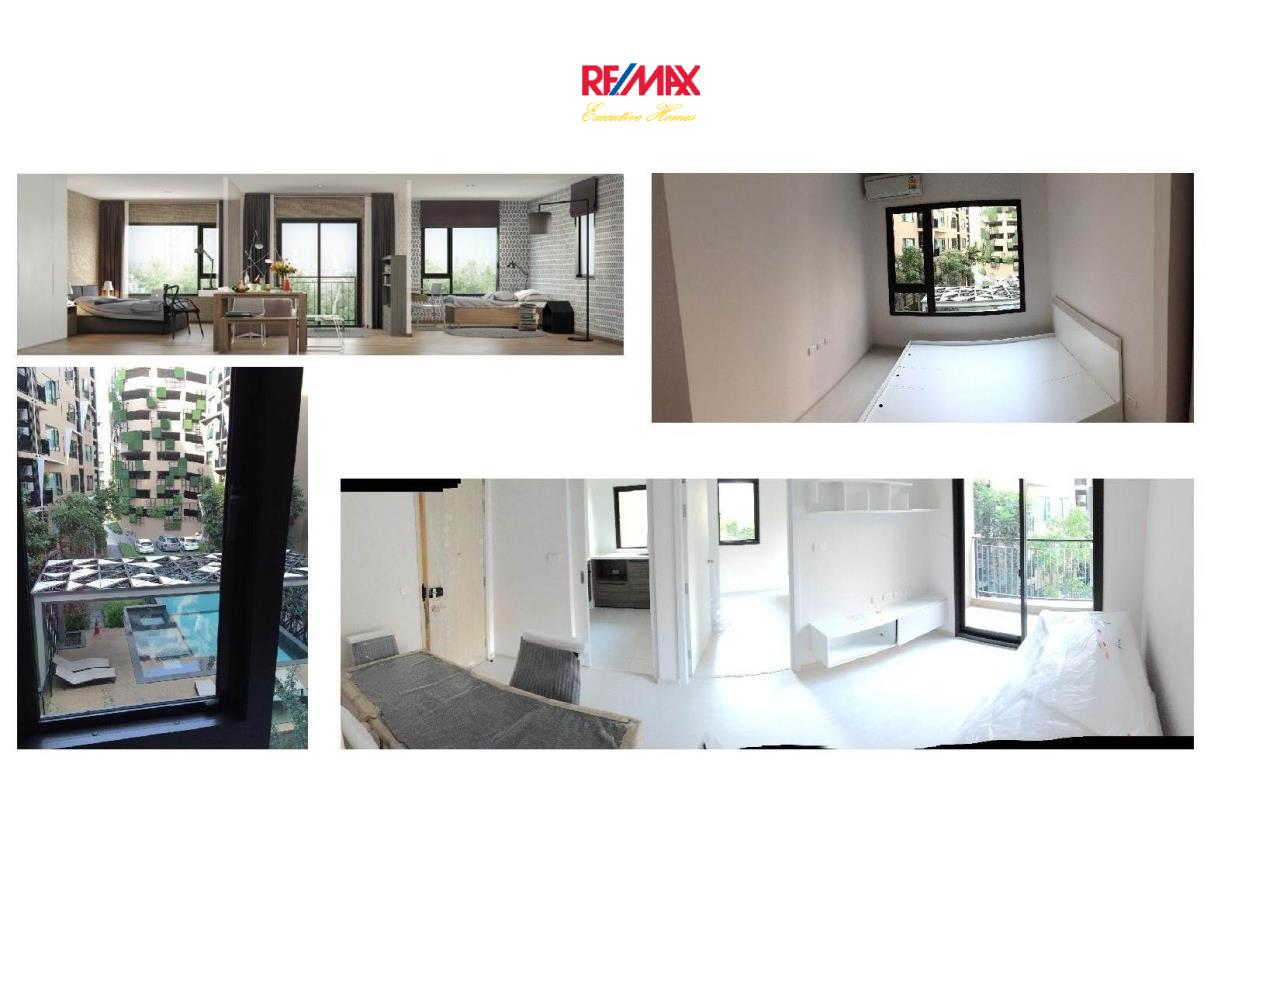 RE/MAX Executive Homes Agency's Nice 2 Bedroom for Sale Condolette Pixel  1